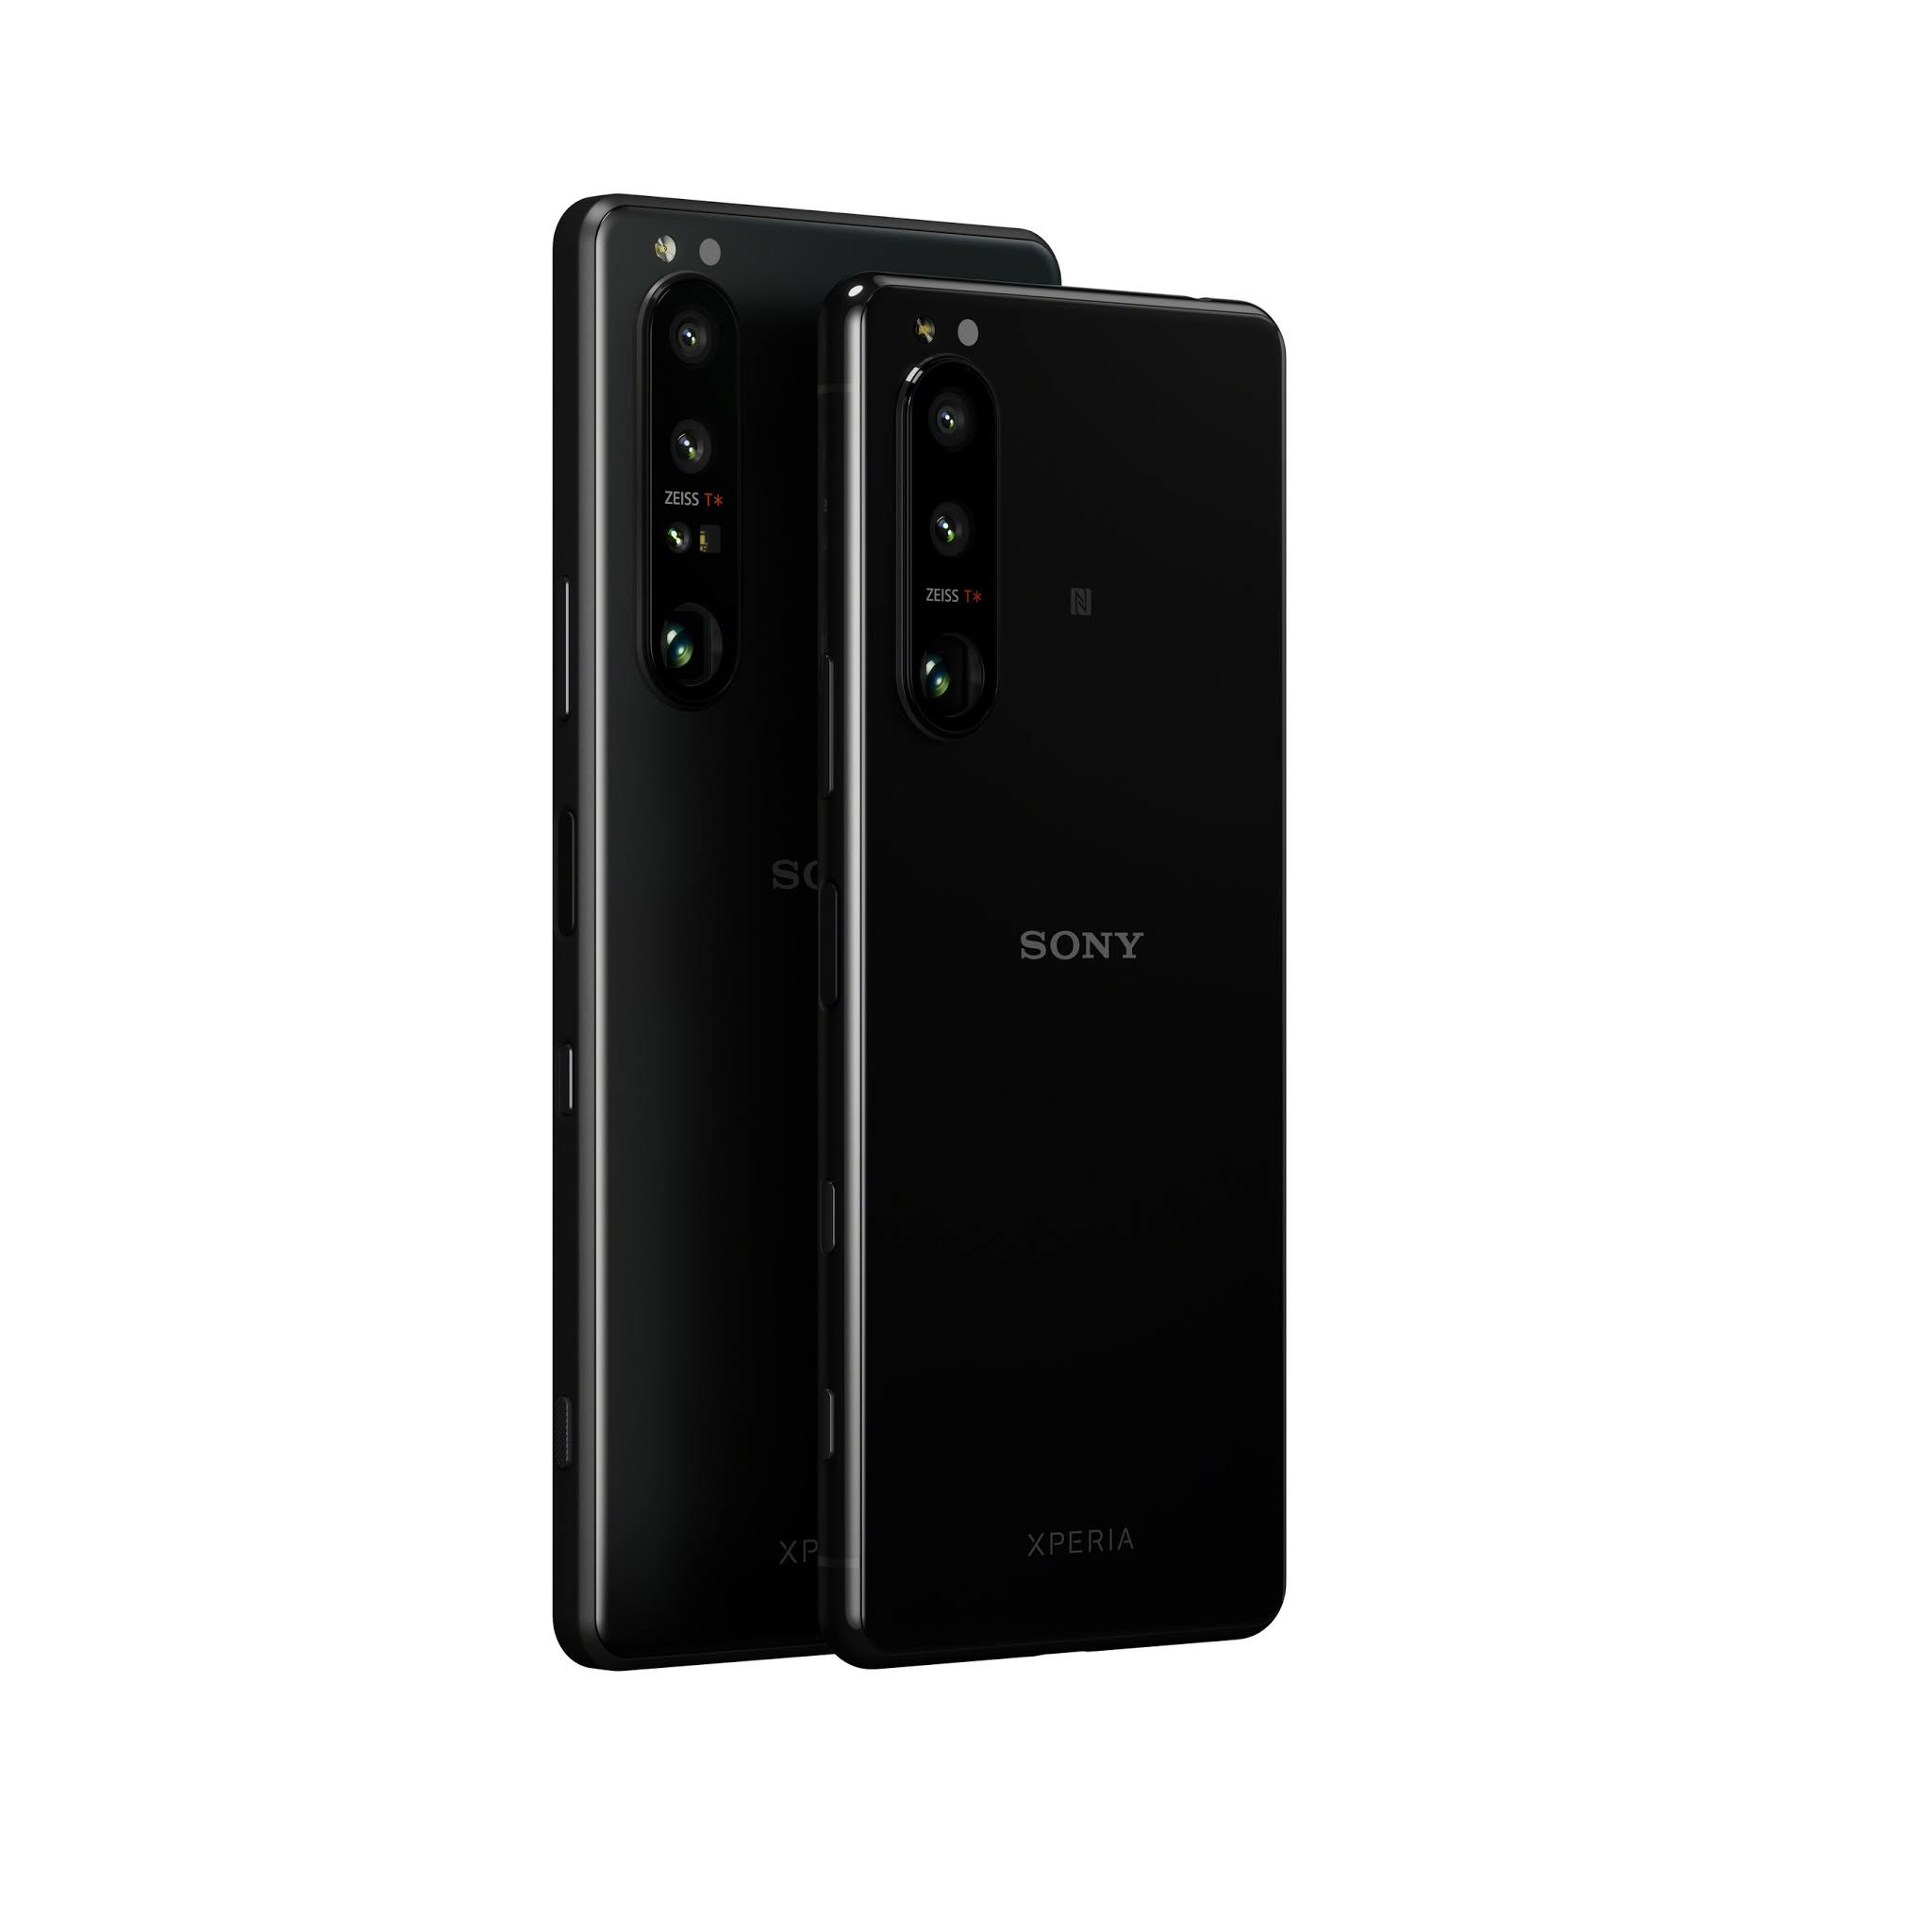 Sony Electronics New Xperia 1 III and Xperia 5 III Smartphones Deliver an Elevated Photo, Video and Entertainment Experience for Creators